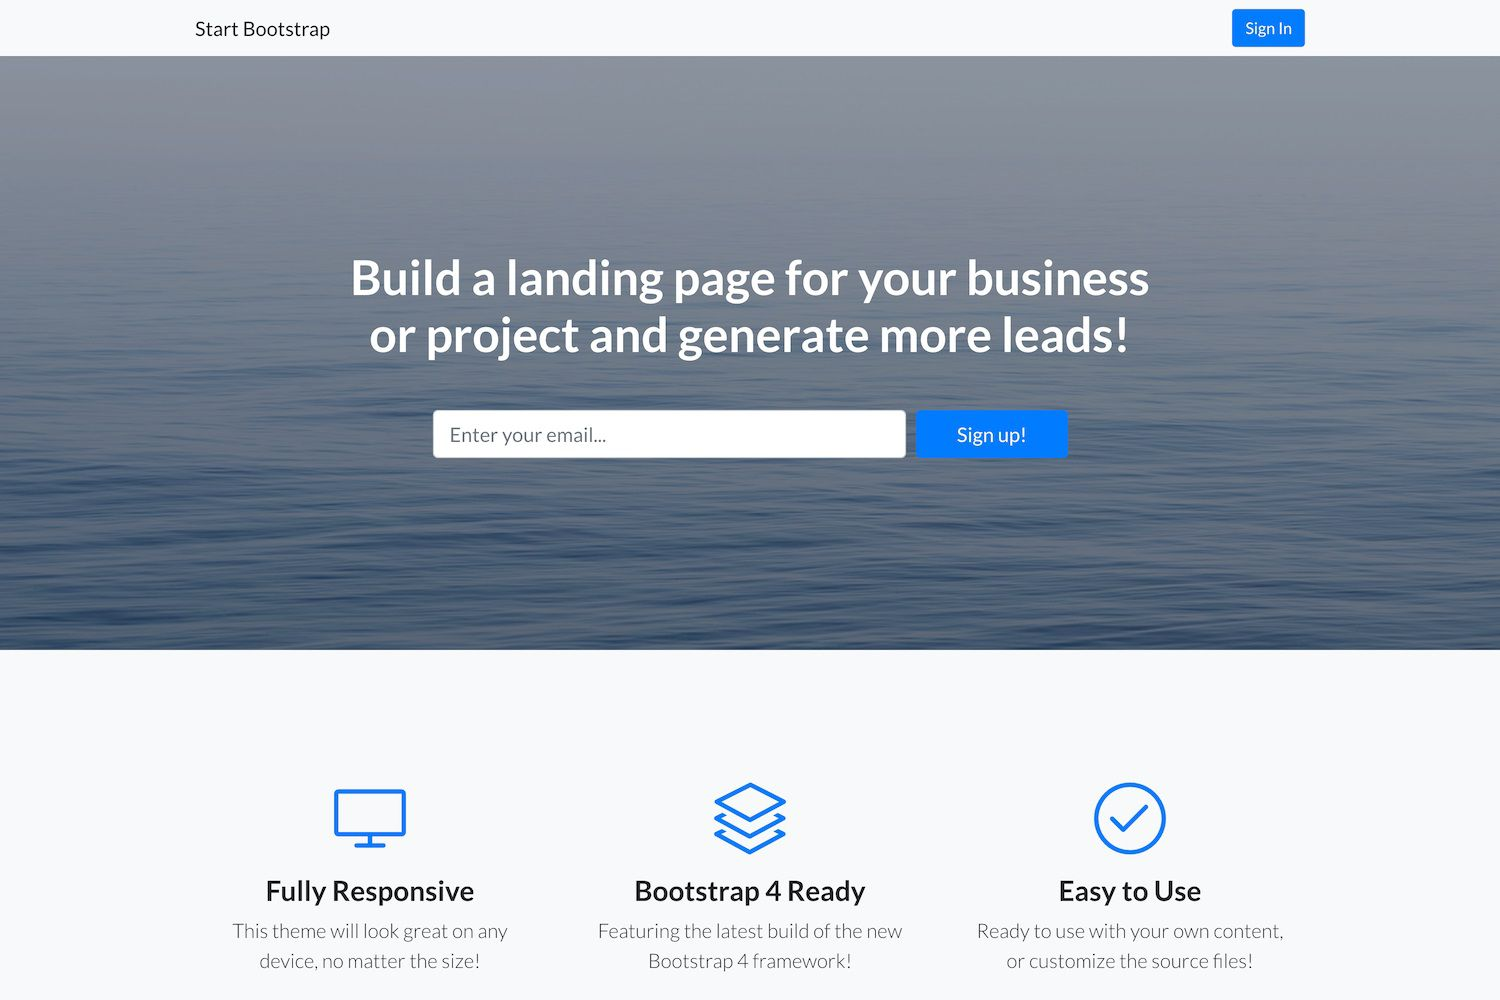 006 Remarkable Free Landing Page Template Bootstrap Idea  3 Html5 2019Full